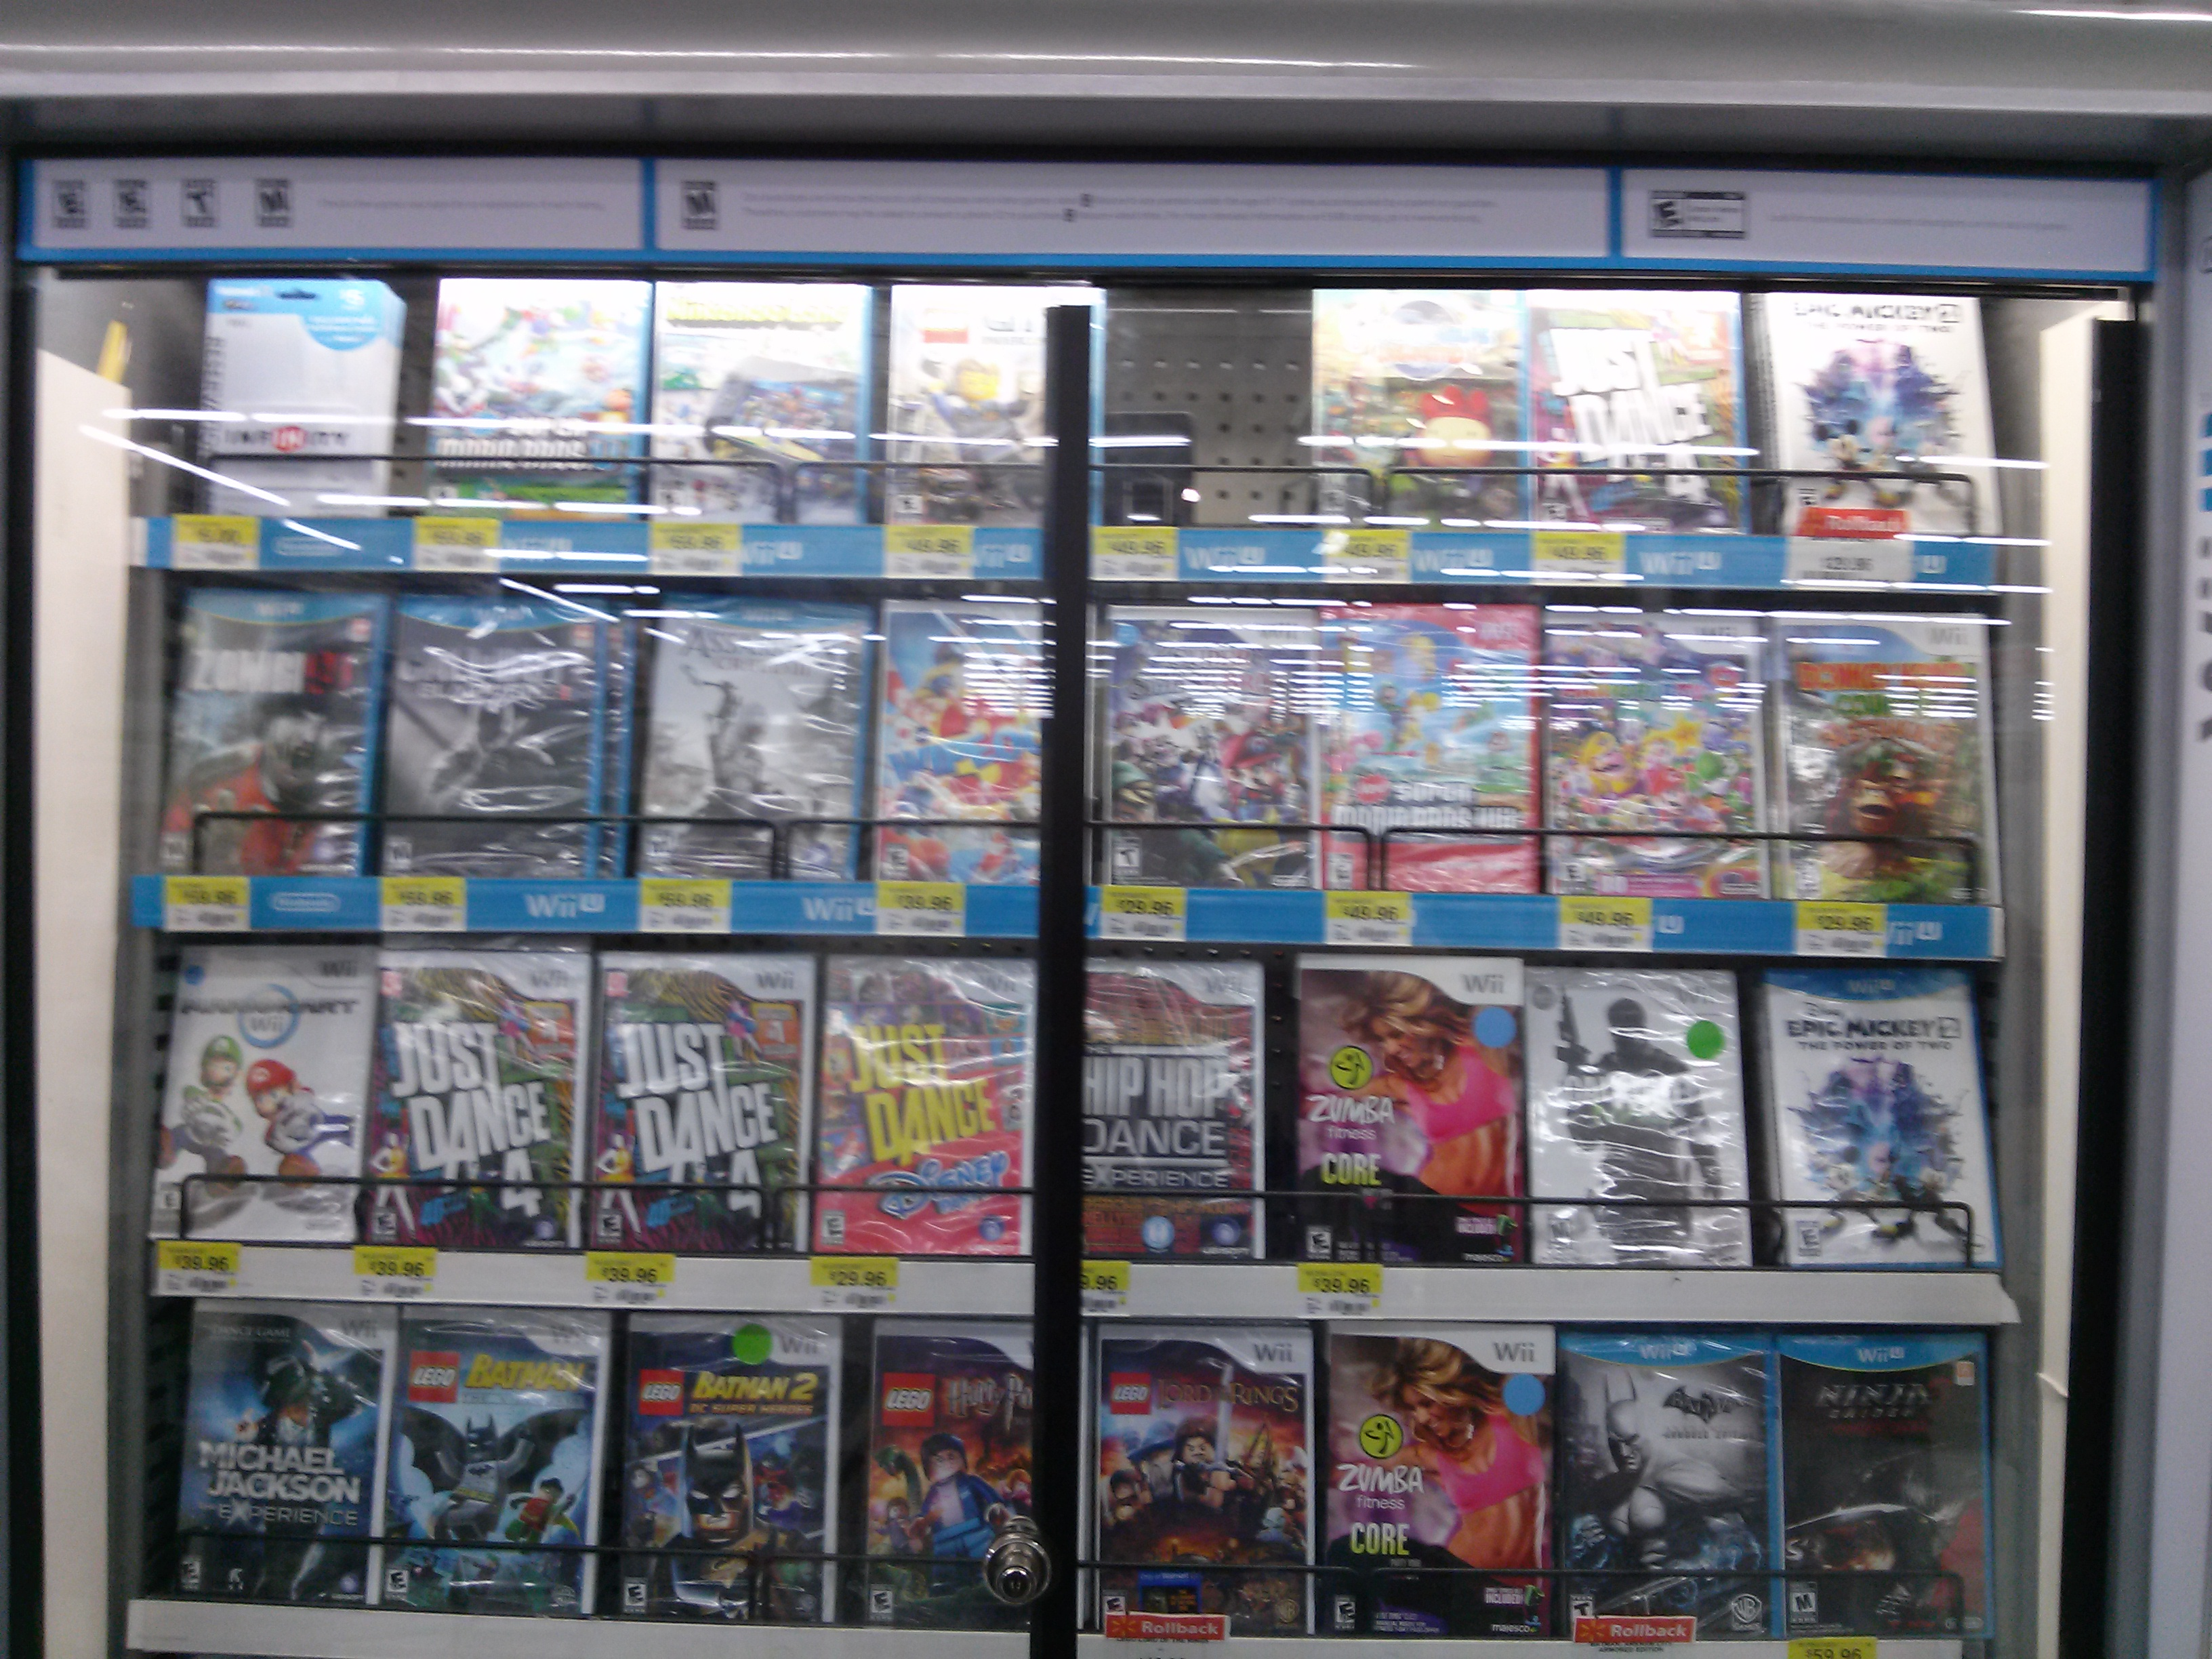 Wii U Games : The curious case of missing wii u games nintendotoday